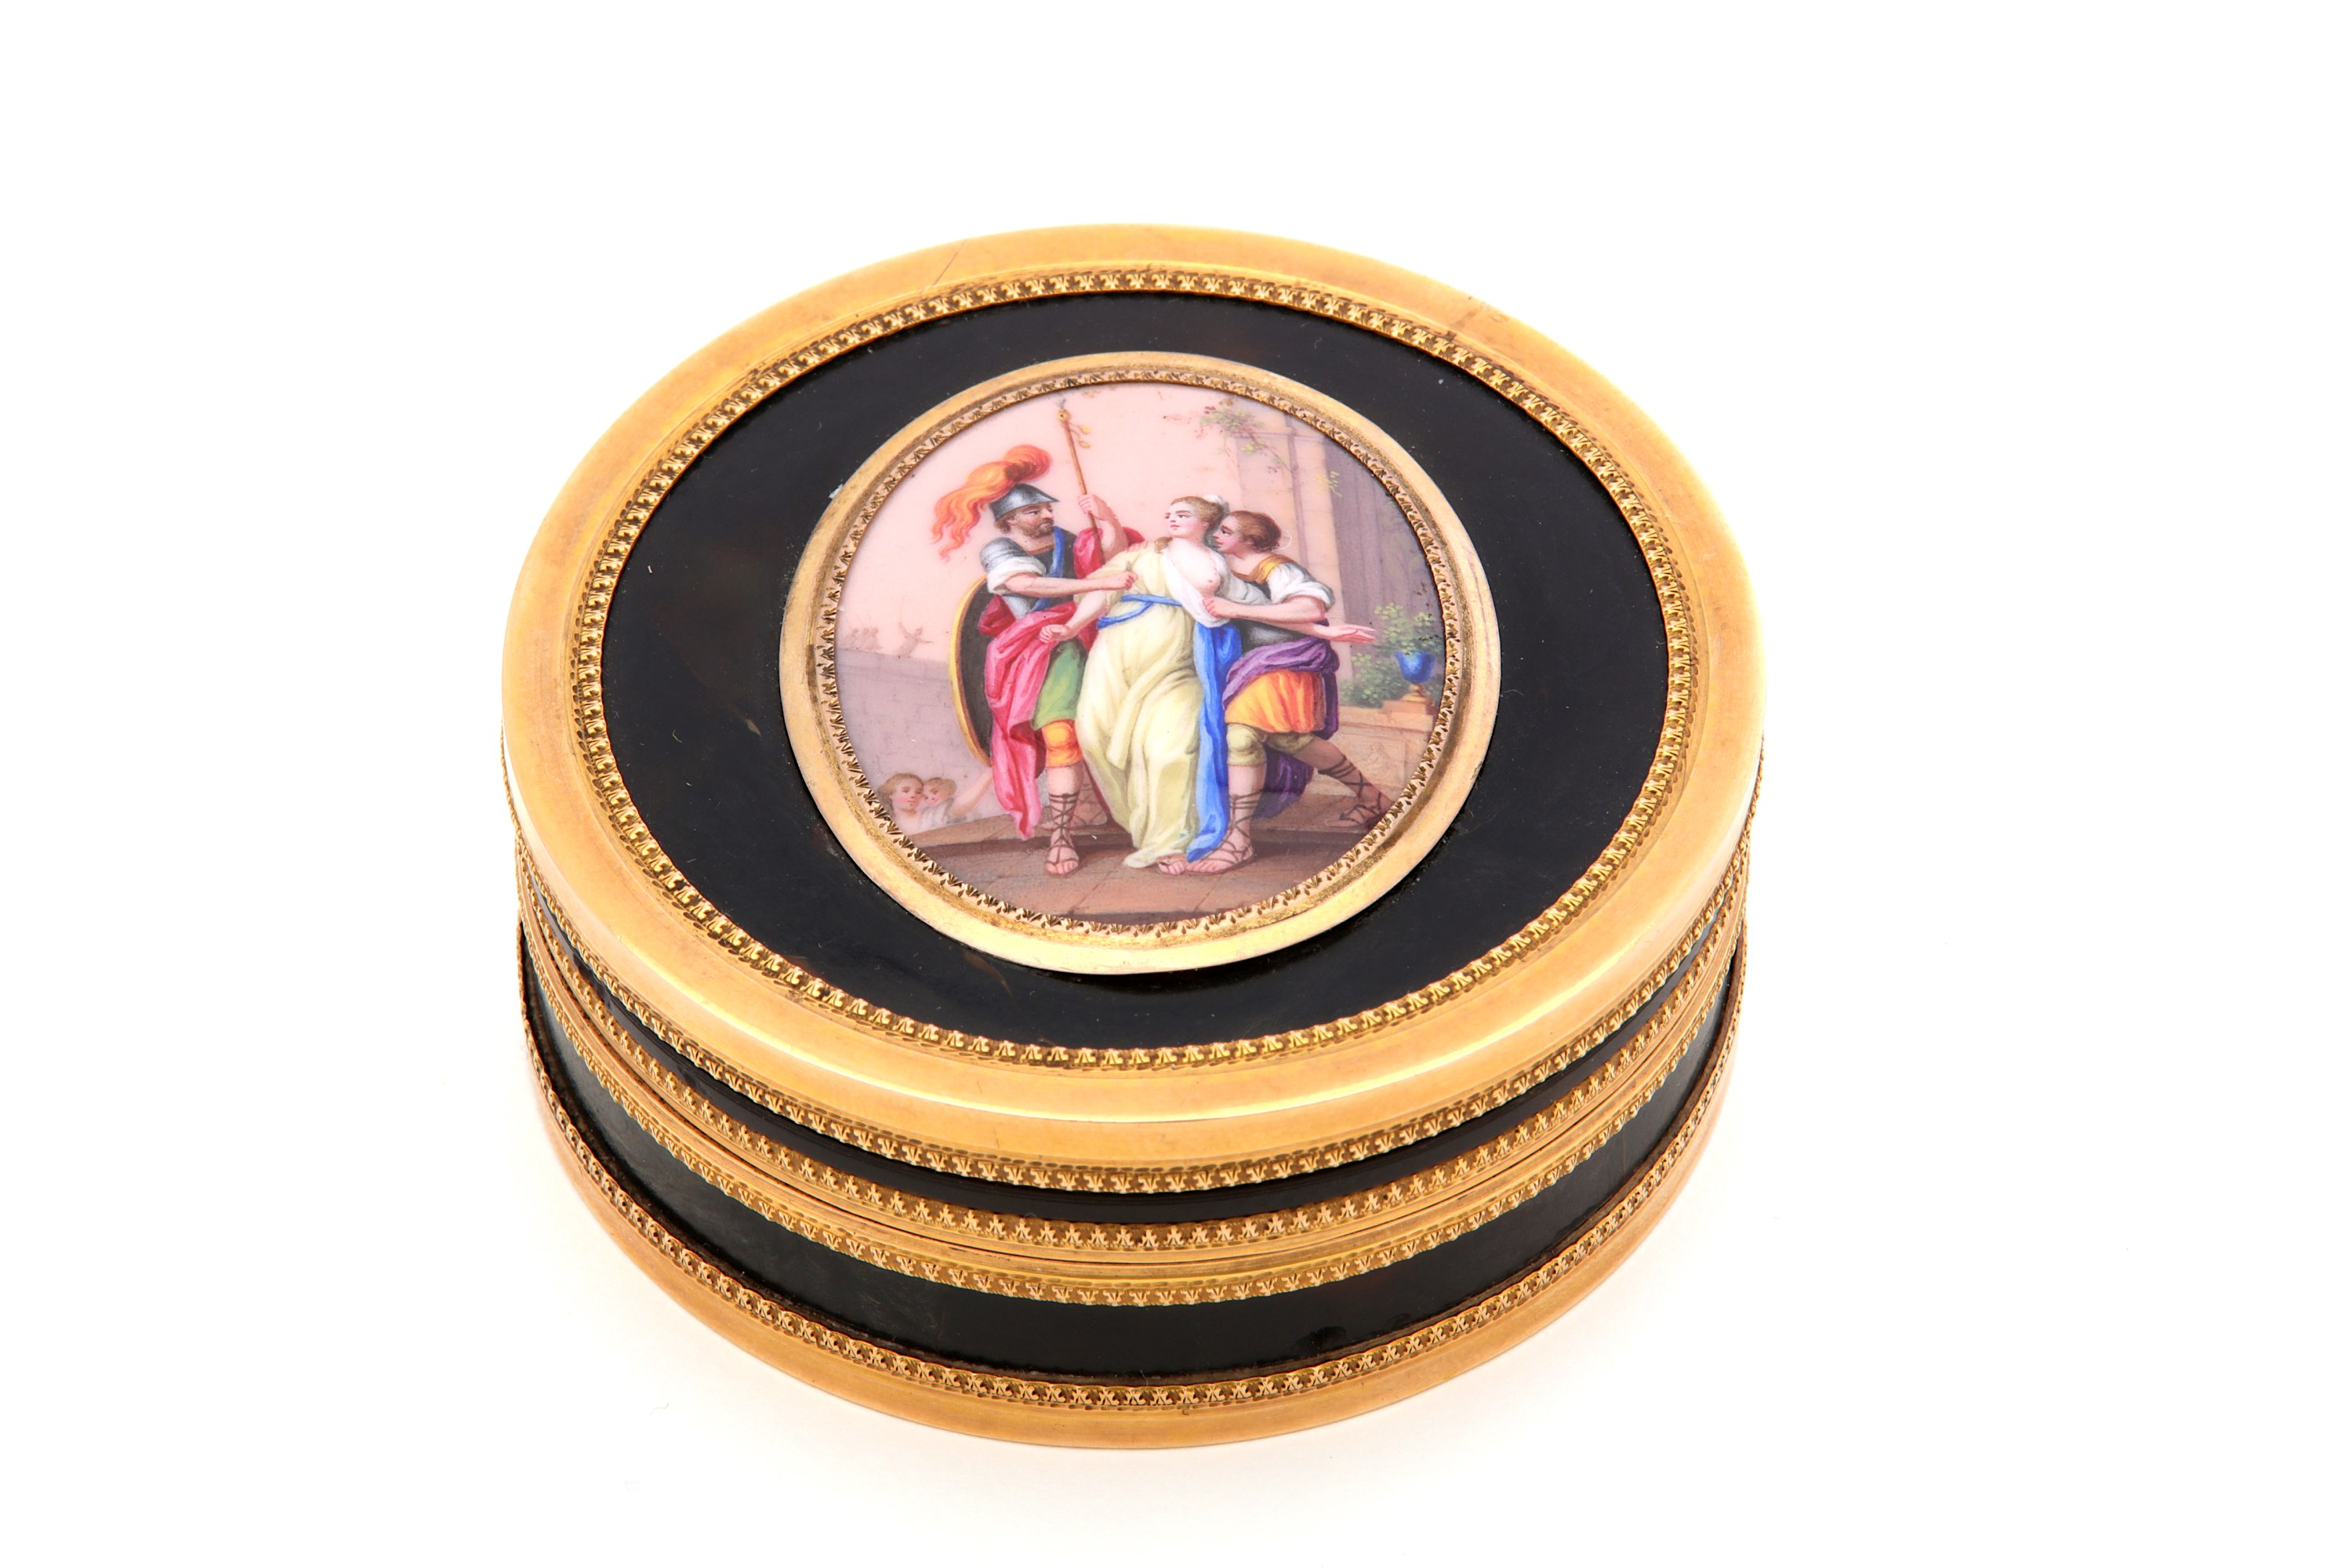 Lot 51 - A late 18th / early 19th century French unmarked gold mounted tortoiseshell snuffbox, Circa 1800